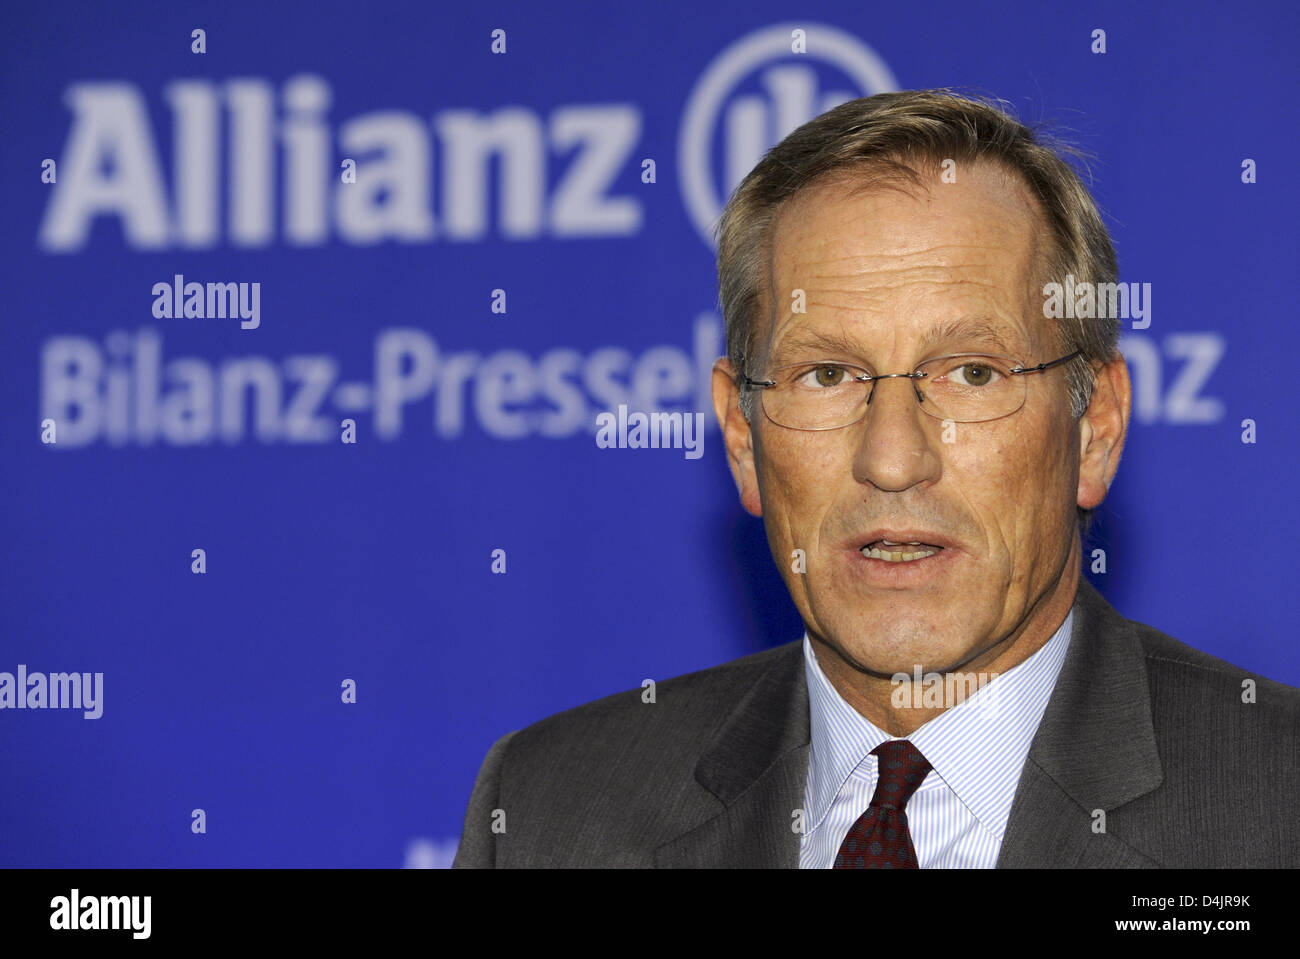 CEO of Allianz, Michael Diekmann, speaks during the balance press conference in Munich, Germany, 26 February 2009. After selling subsidiary ?Dresdner Bank? and also due to the financial crisis, Europe?s largest insurer has suffered a lost of 2.4 billion euro during the last year, as announced by Allianz SE in Munich. Photo: PETER KNEFFEL Stock Photo